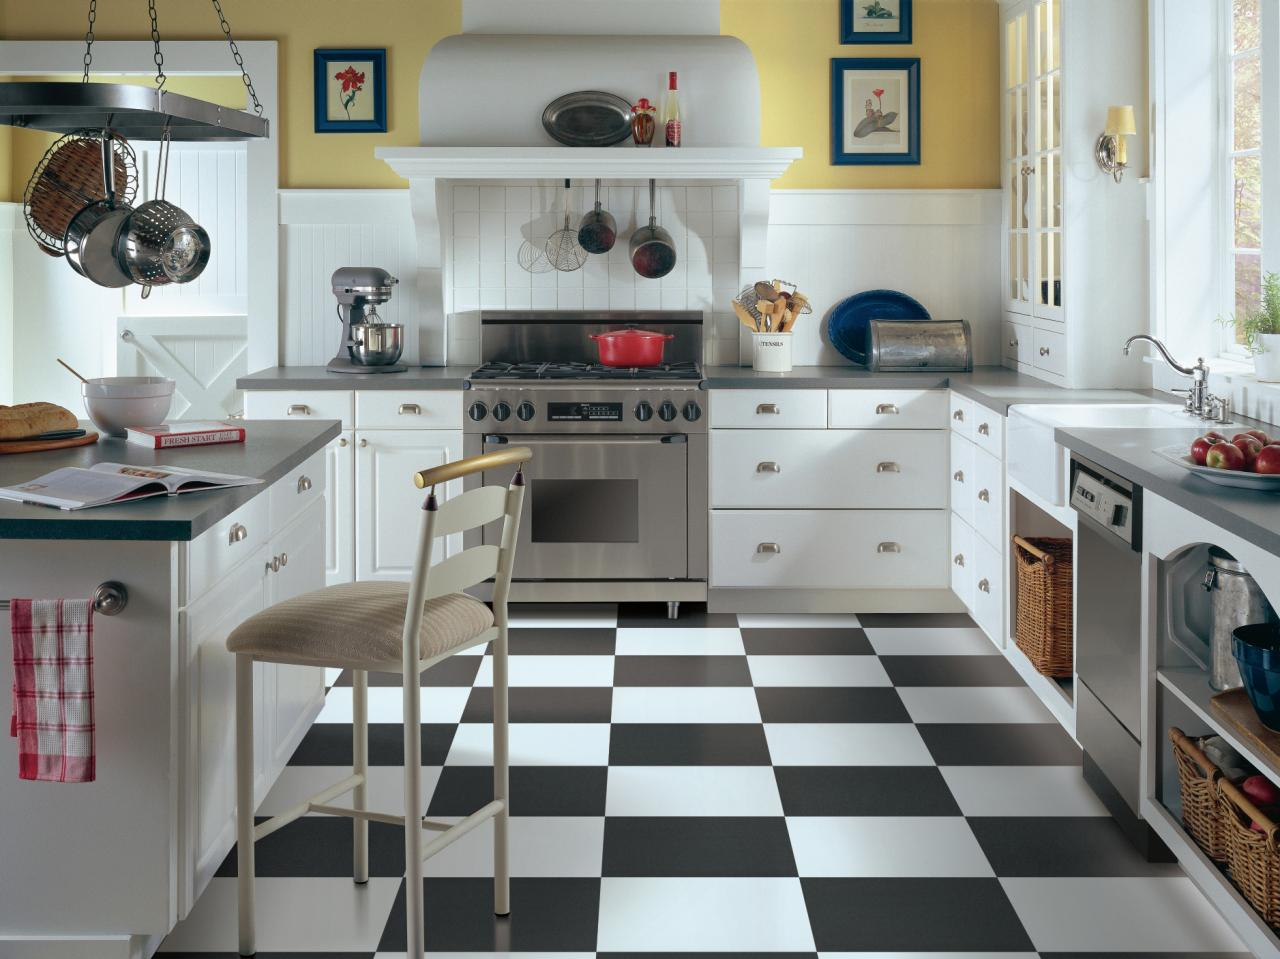 Best Kitchen Flooring kitchen floor buying guide | hgtv